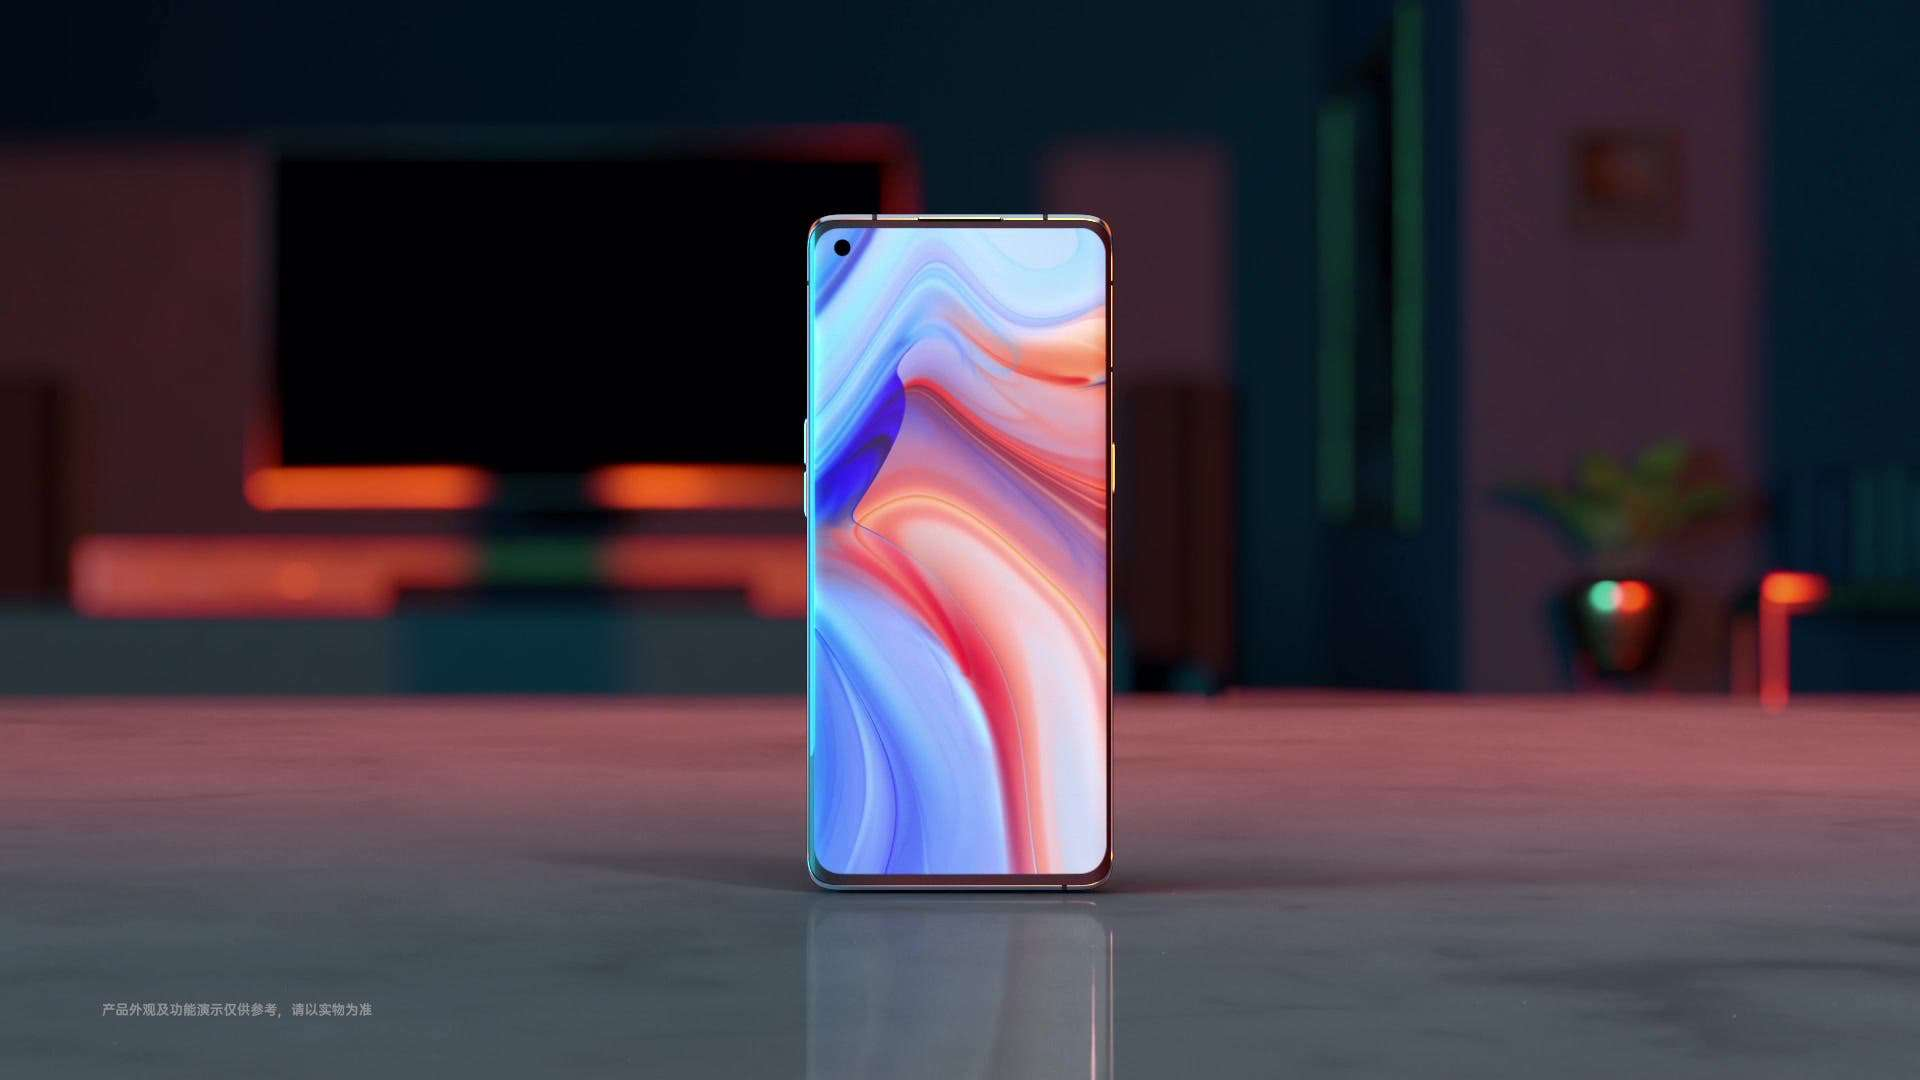 Oppo Reno 4 Pro Global Variant Will Be Different Than The Chinese Variant